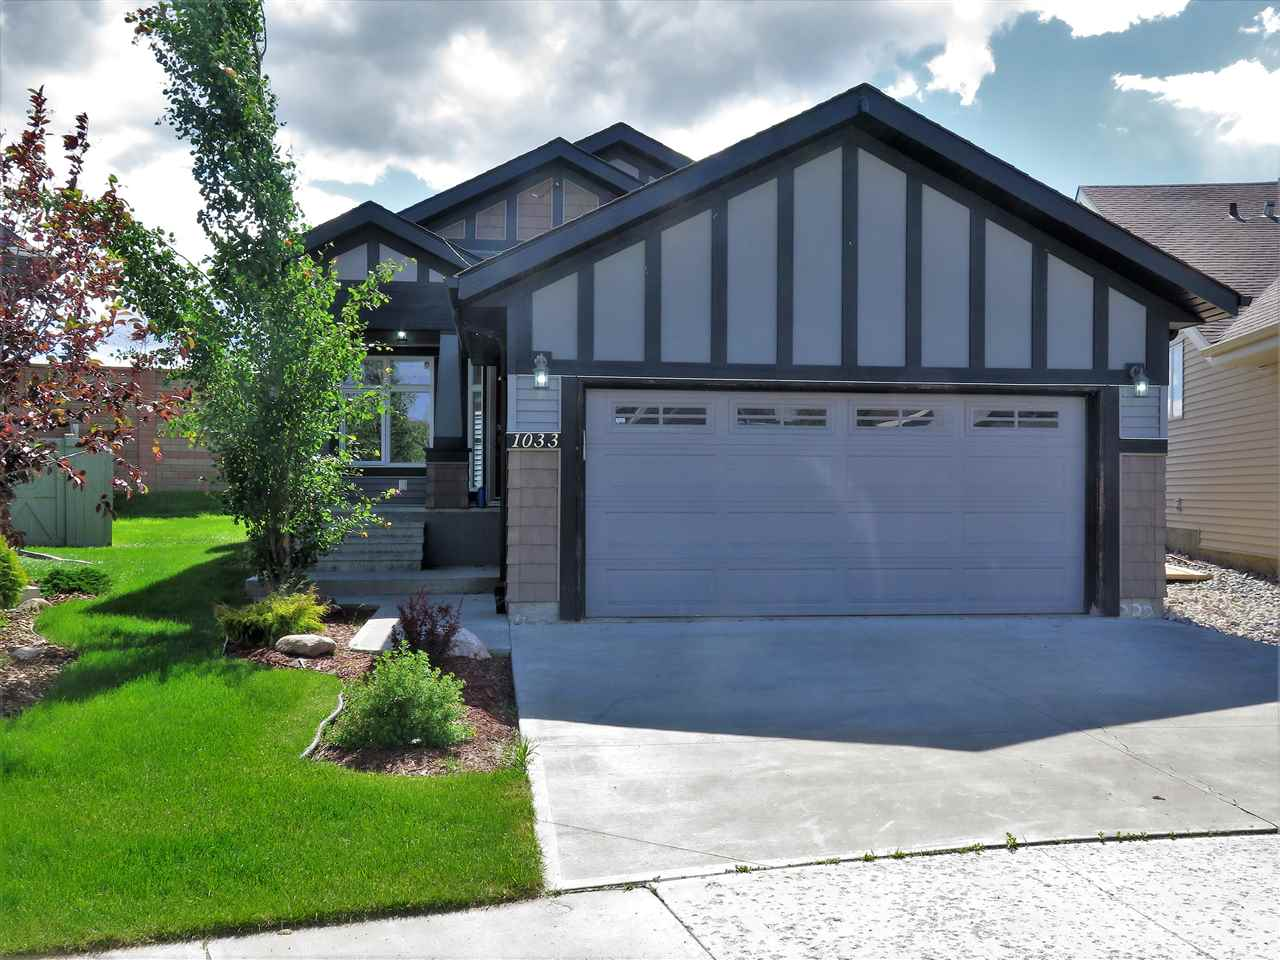 Main Photo: 1033 CHAHLEY Lane in Edmonton: Zone 20 House for sale : MLS(r) # E4070328